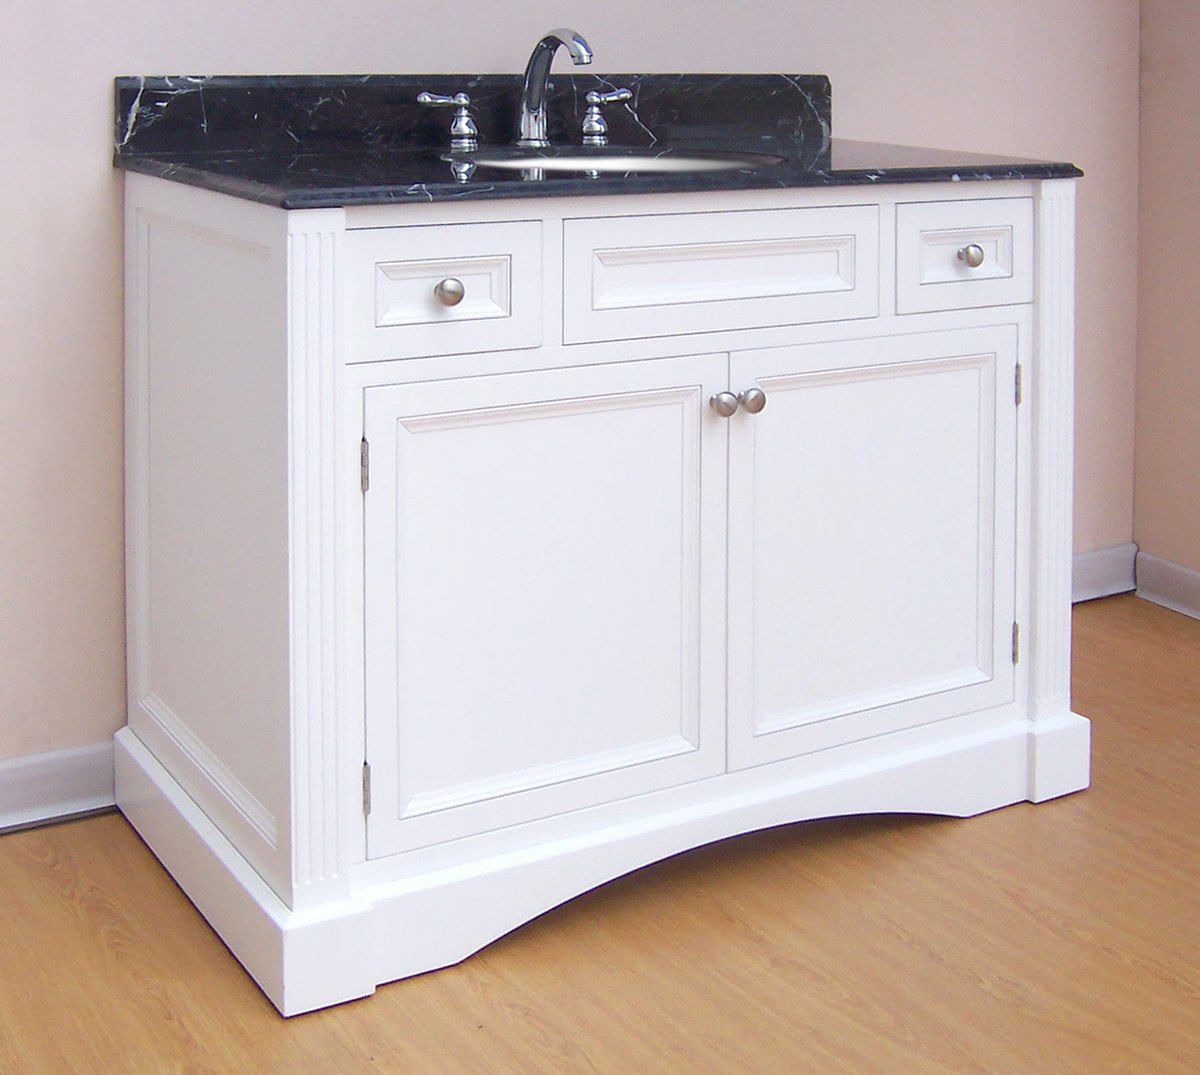 Modular 42 Bathroom Vanity Cabinets Gorgeous Cabinet 43 Inch Tops With Sink pertaining to 42 Bathroom Vanity Cabinets